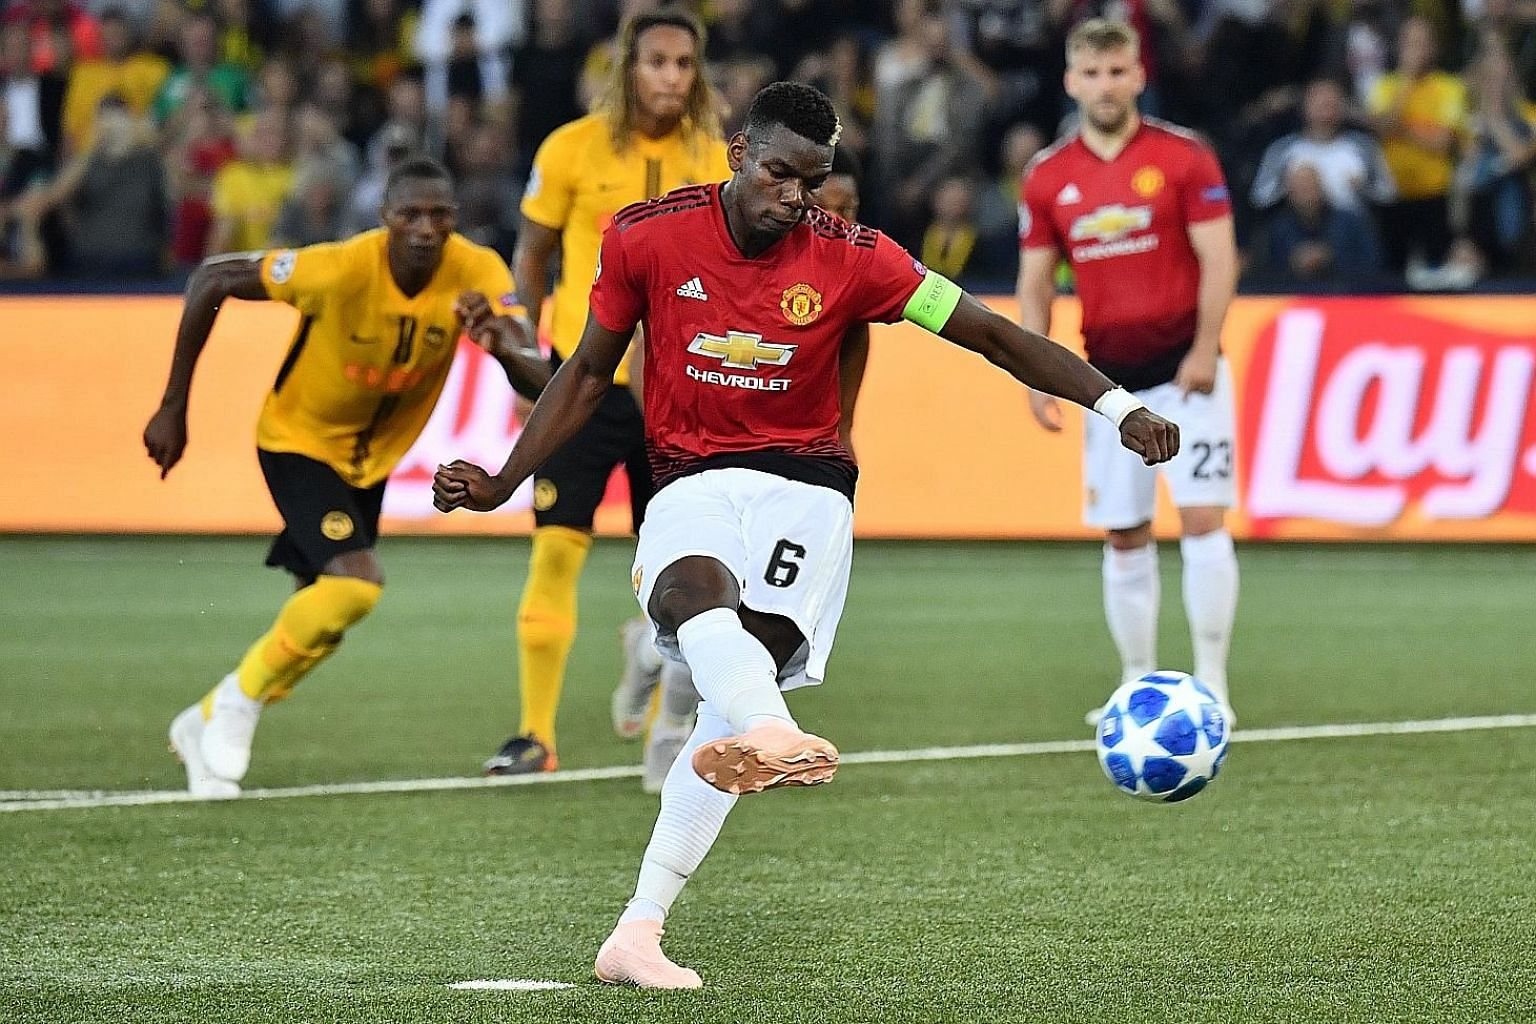 Manchester United's stand-in skipper Paul Pogba scoring from the spot against Young Boys to make amends for missing a penalty against Burnley in the league last month. United won 3-0 in Switzerland, with Pogba scoring two and creating the other.